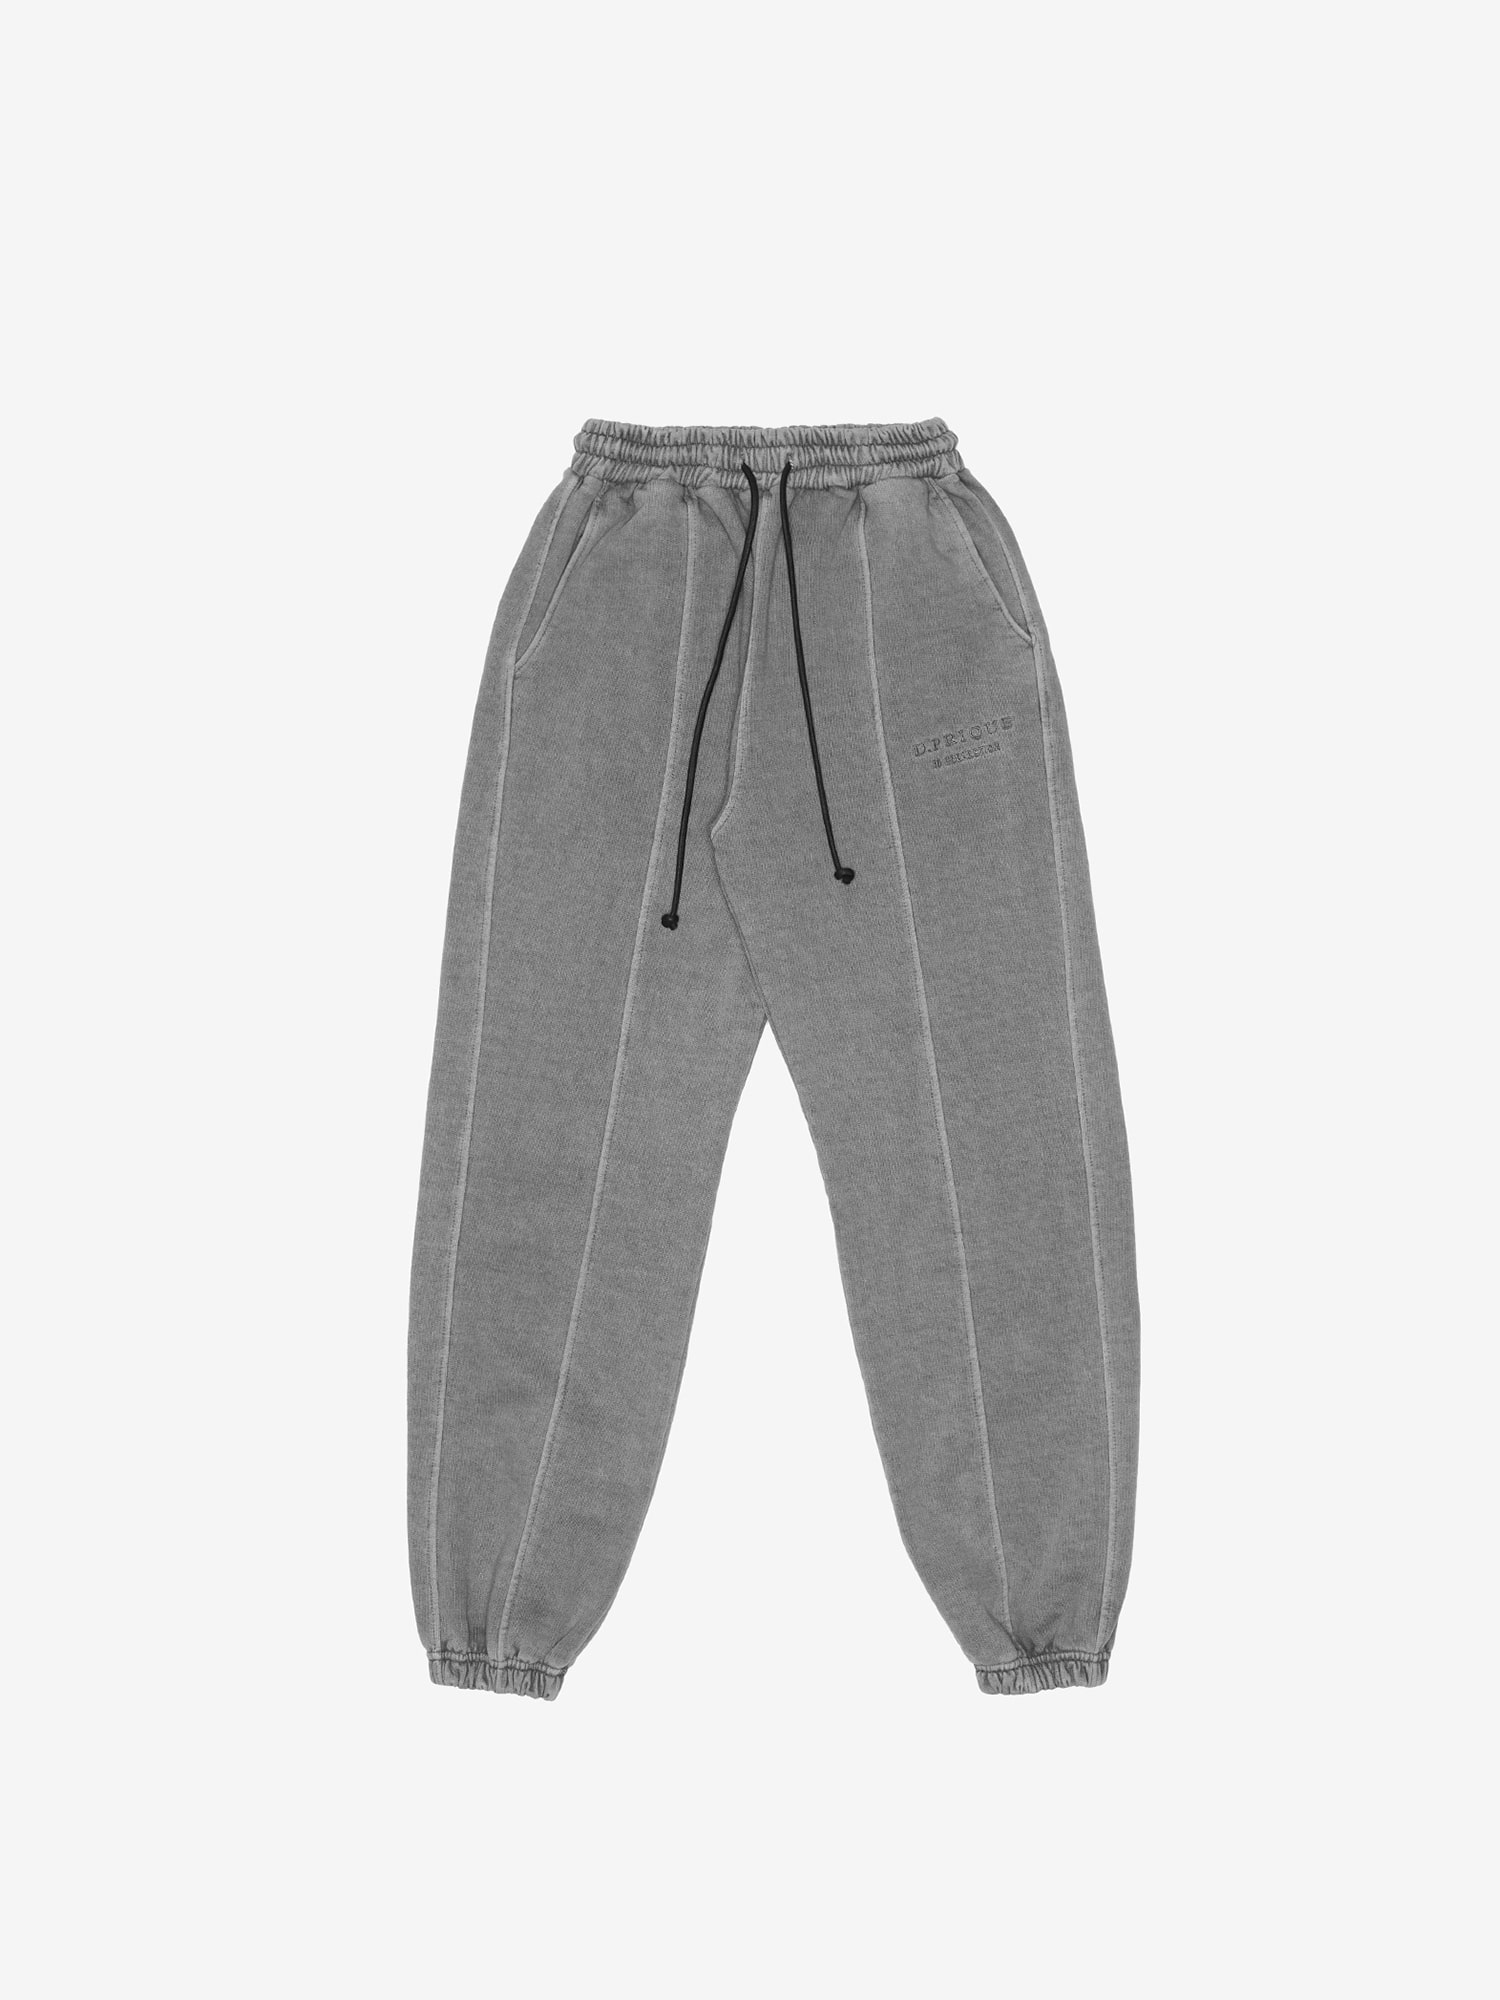 WASHED SWEATPANTS - Grey